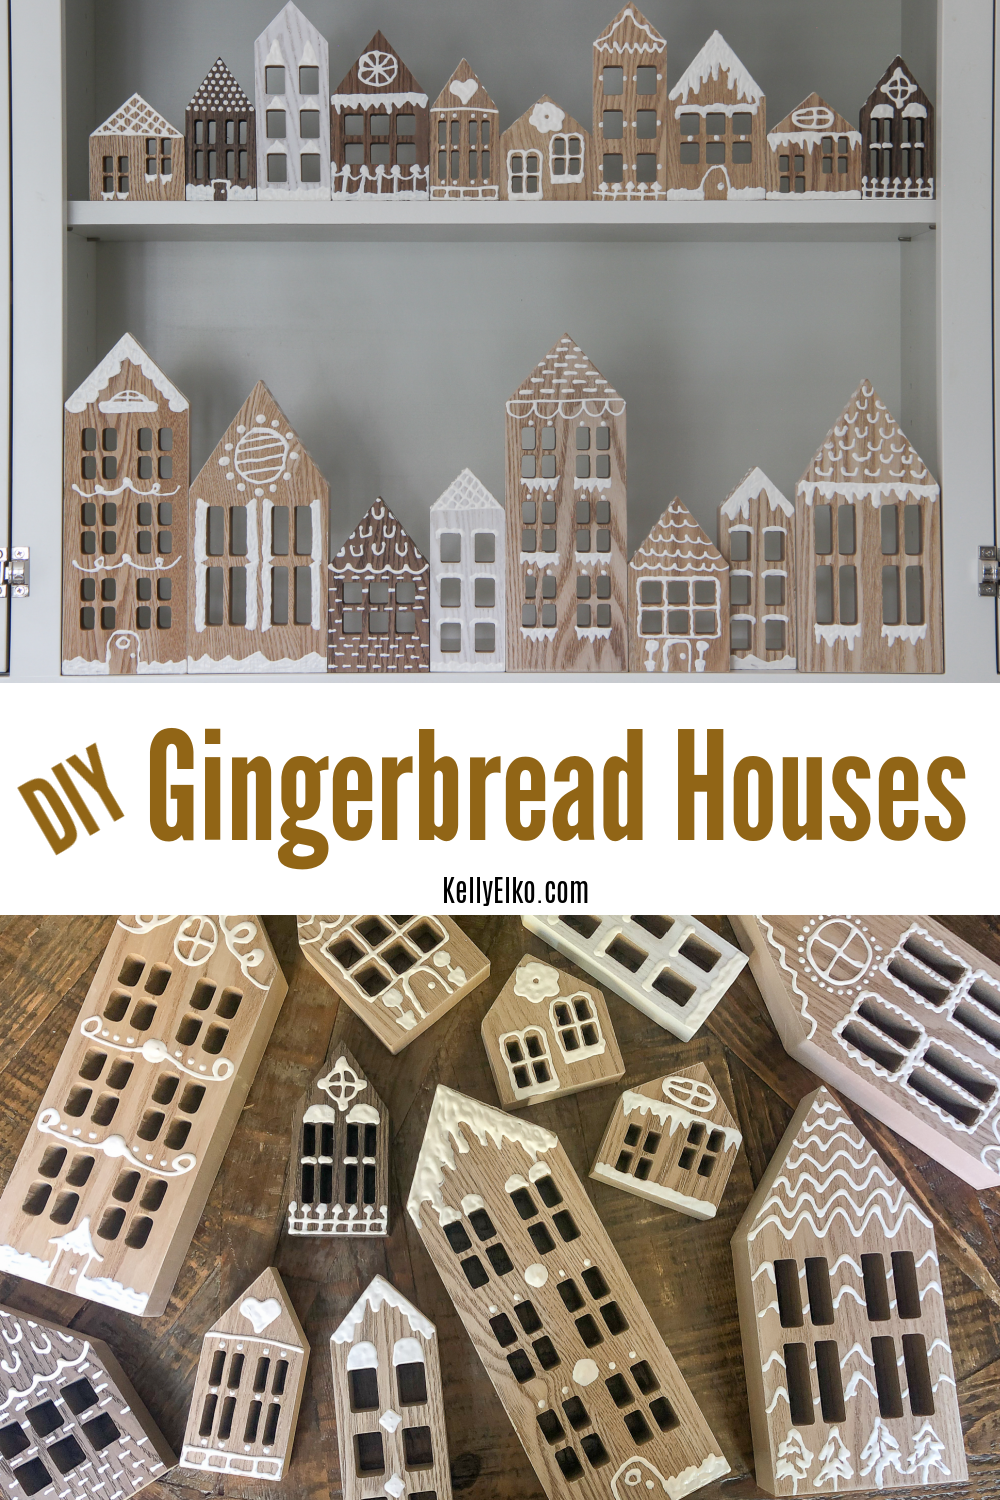 DIY Wood Gingerbread Houses kellyelko.com #christmas #christmascrafts #crafts #kidscrafts #diychristmas #christmasdecor #diychristmasdecor #farmhousechristmas